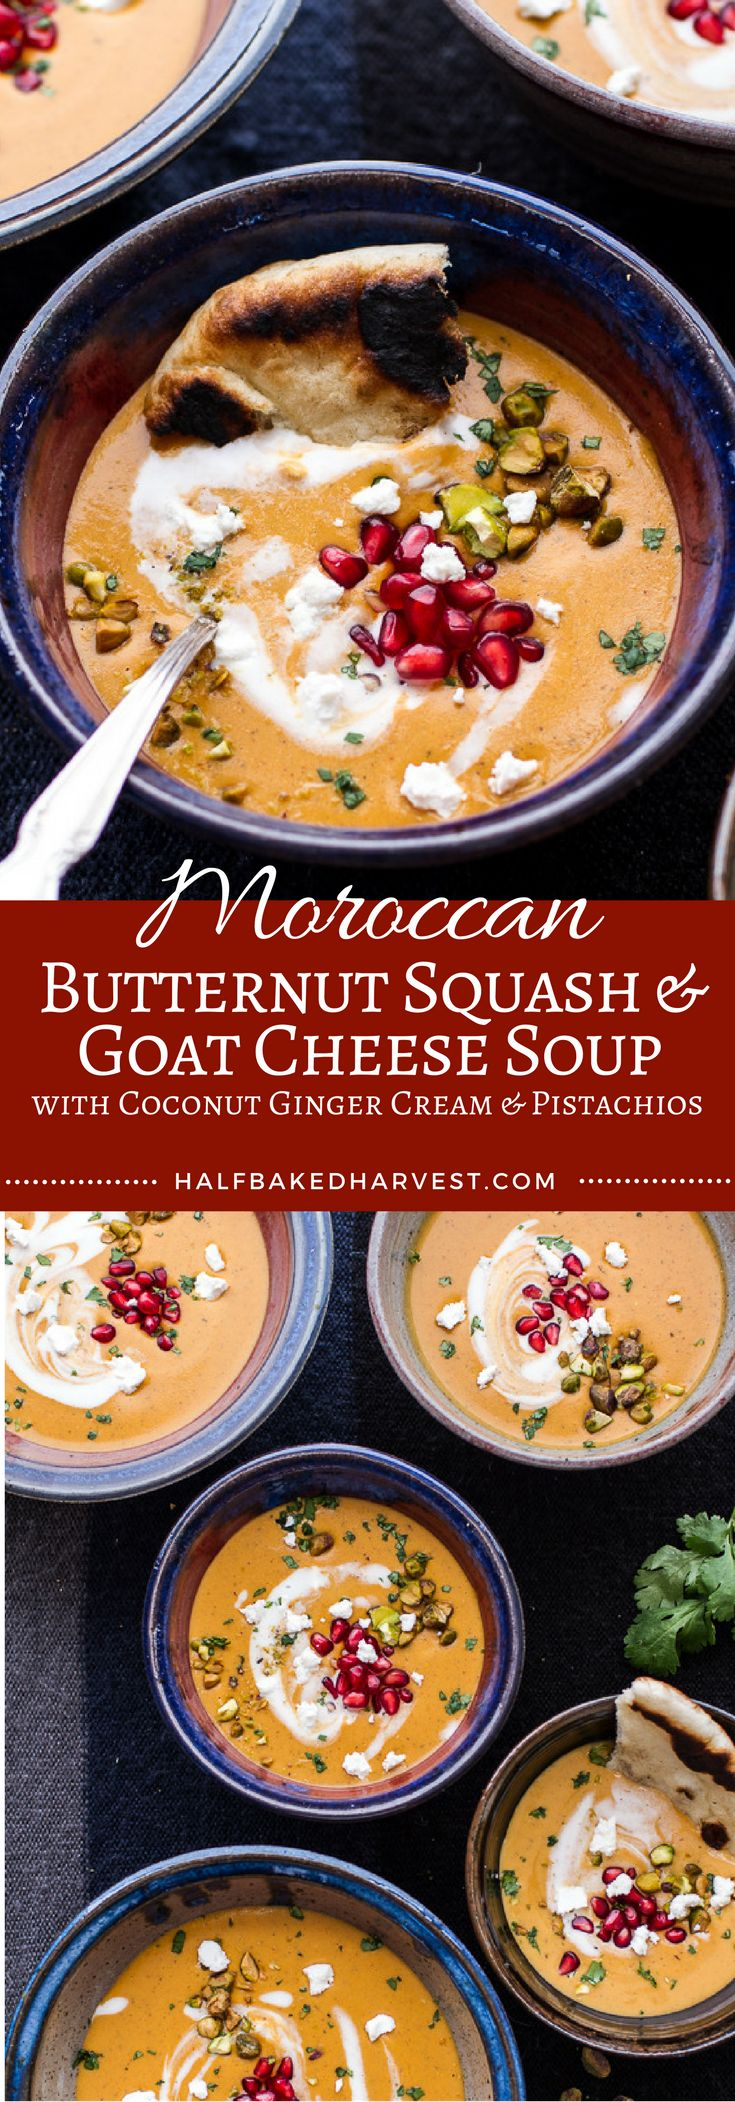 Moroccan Butternut Squash and Goat Cheese Soup w/Coconut Ginger Cream + Pistachios | halfbakedharvest.com @Half Baked Harvest